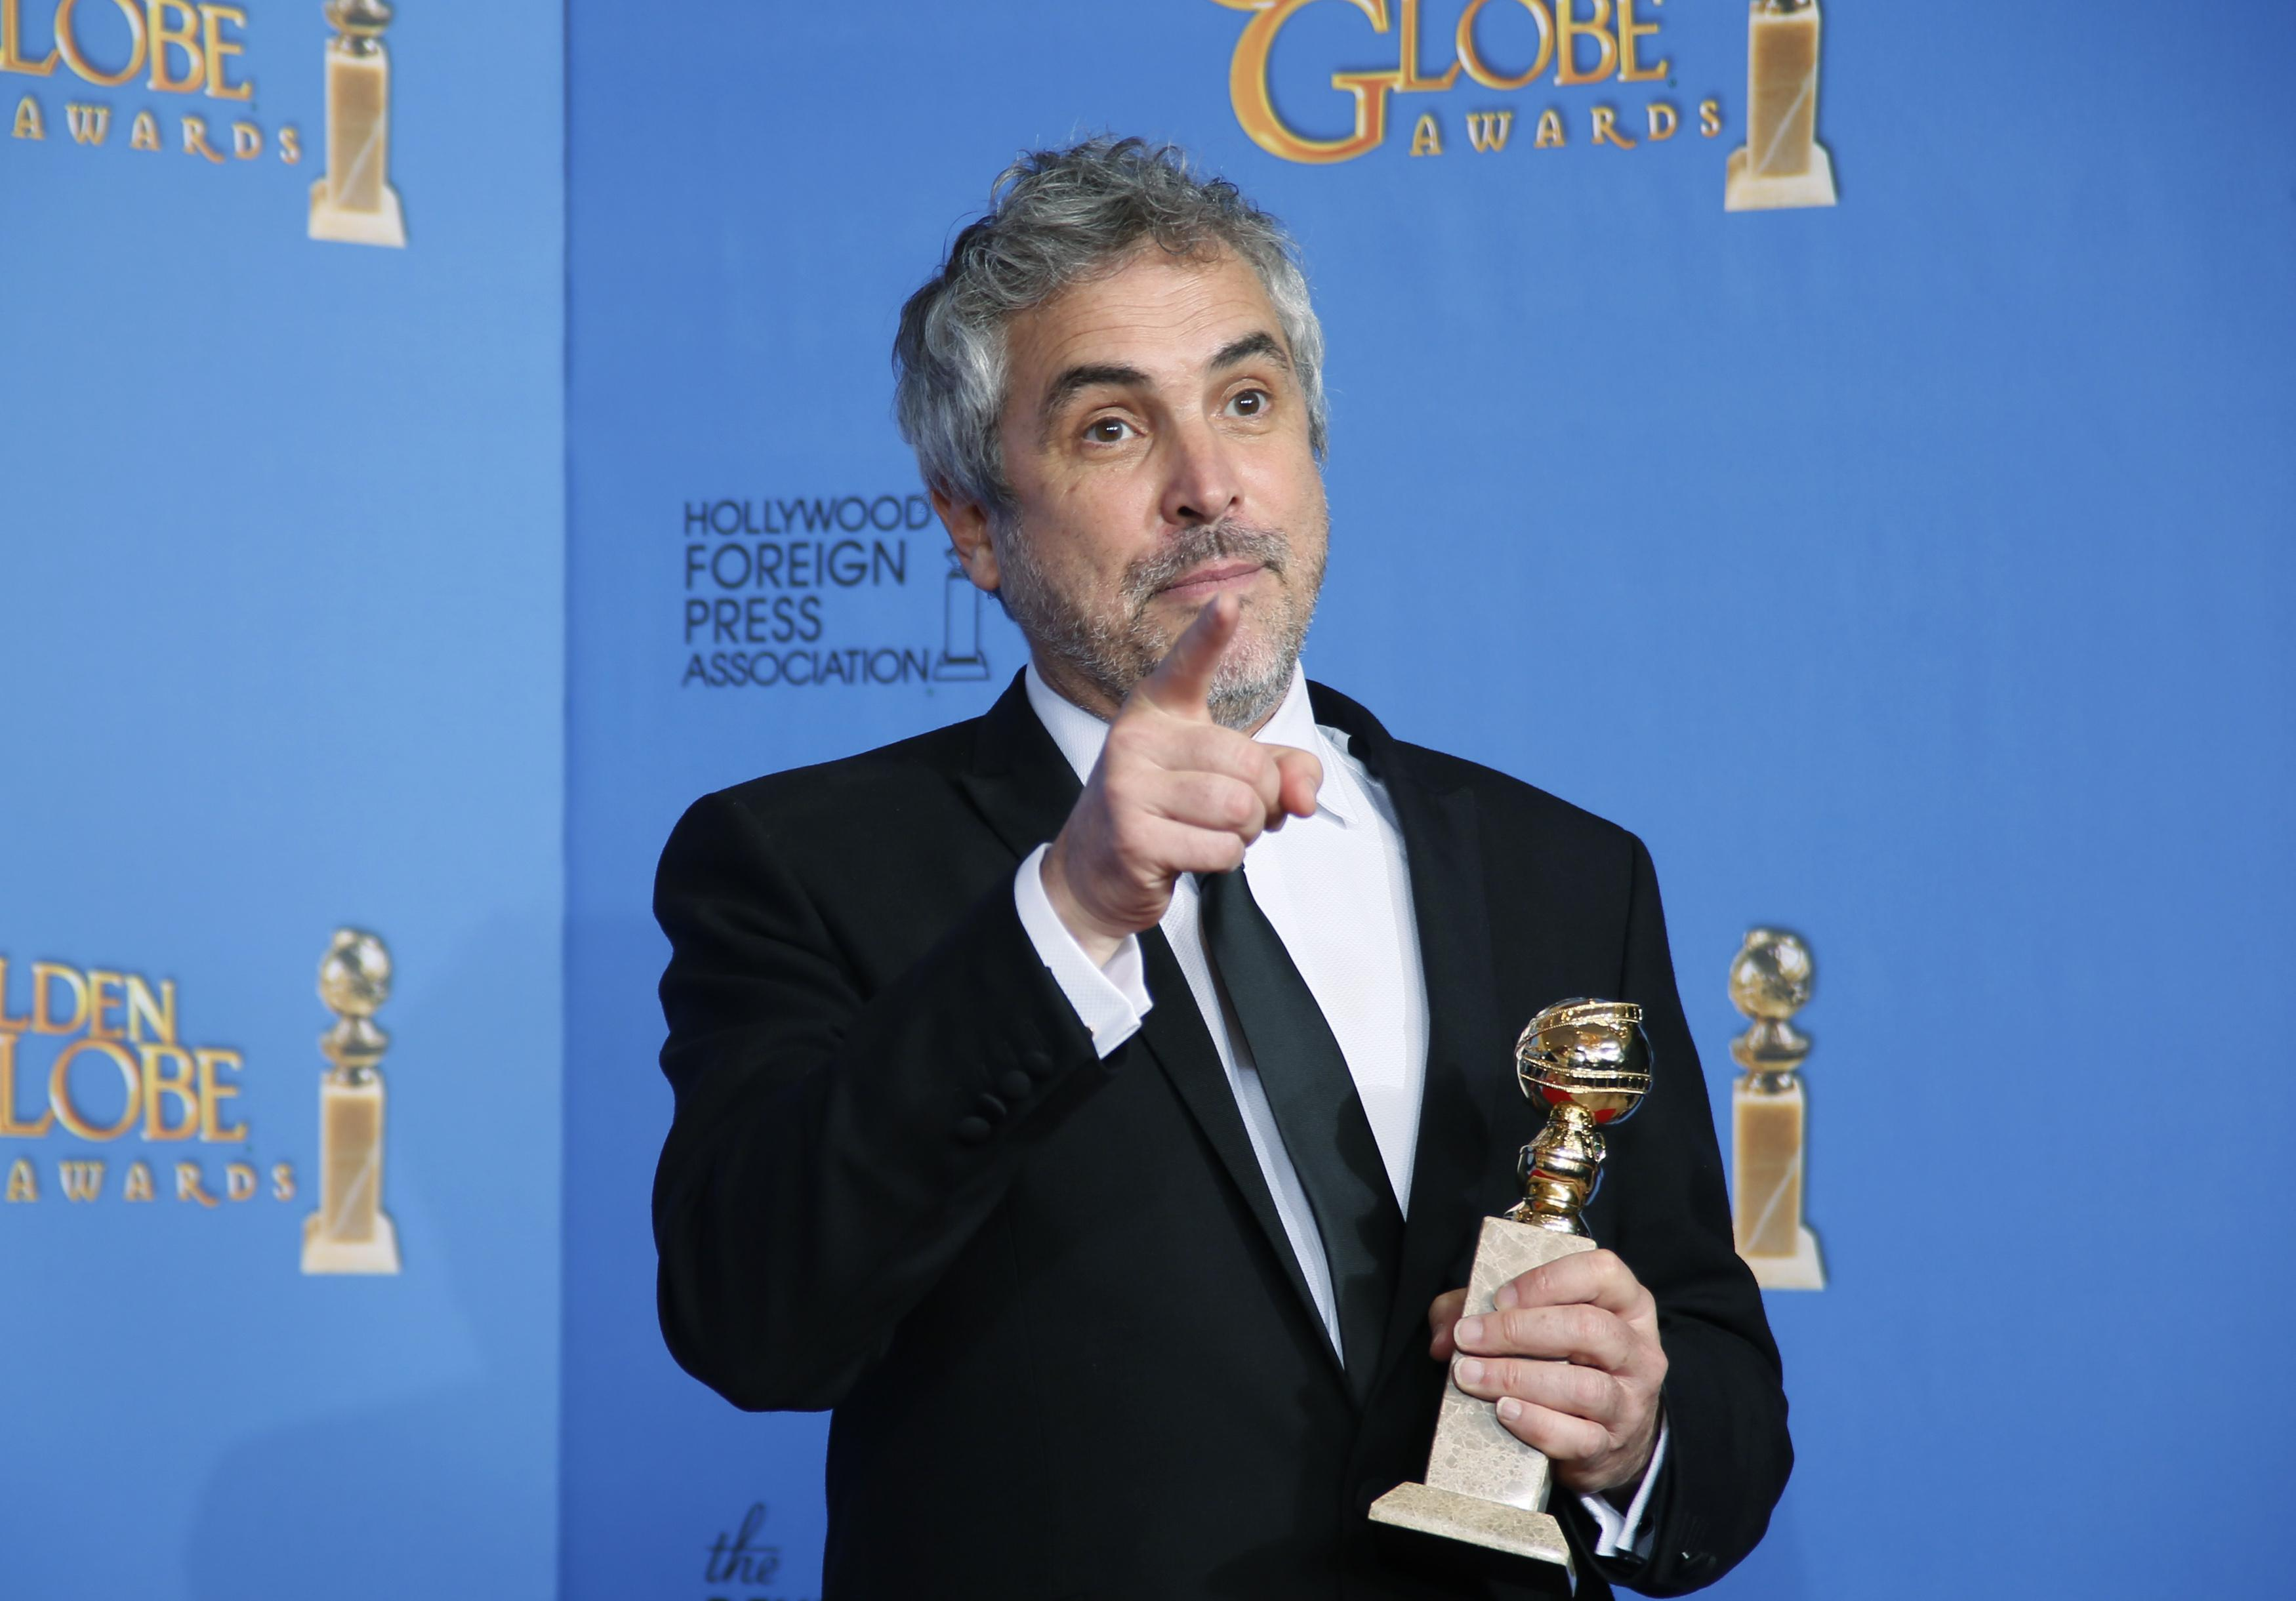 Alfonso Cuarón at Golden Globes